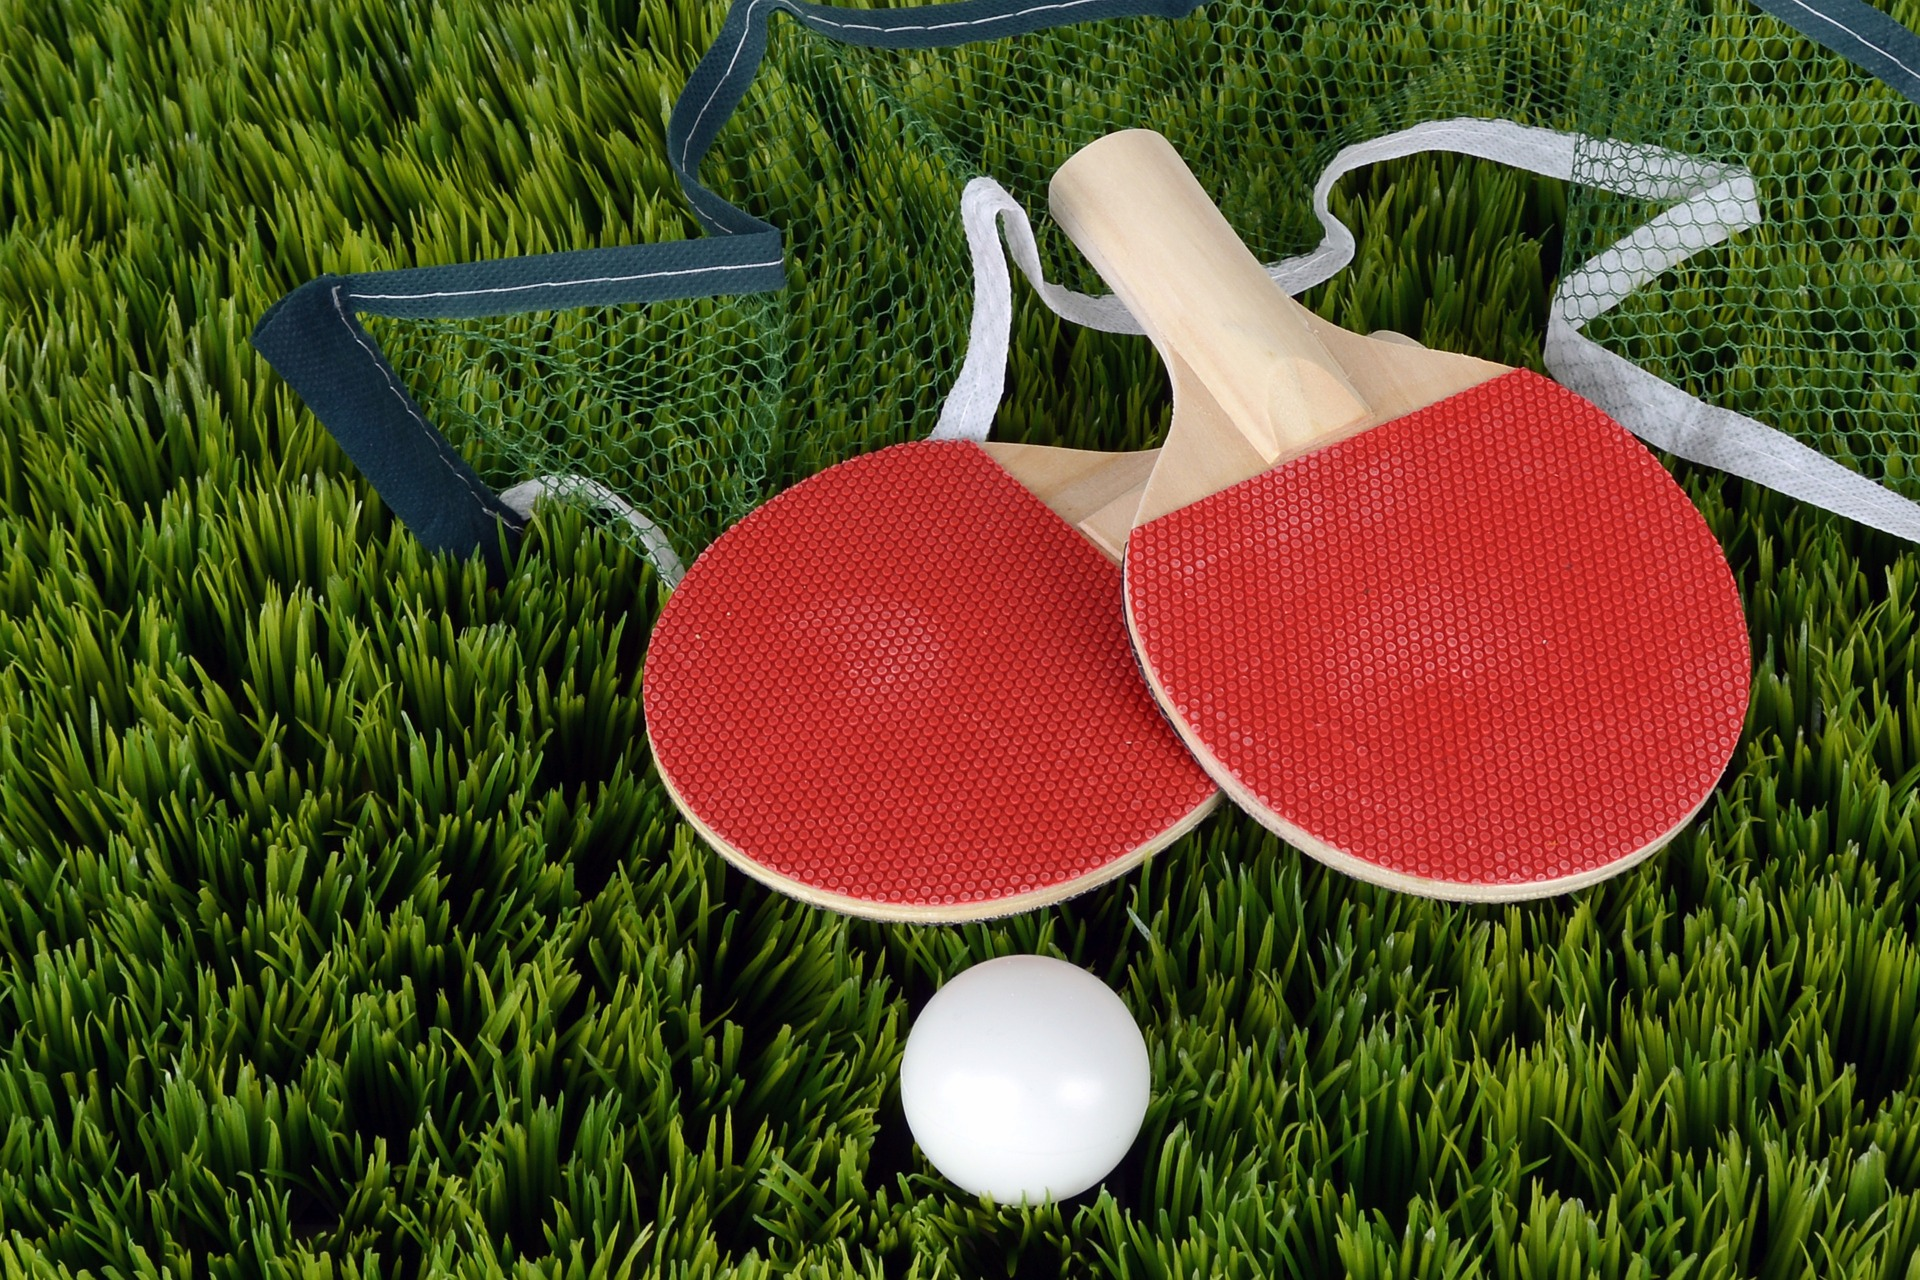 , Ping Pong in the Backyard, Best Garden, Home And DIY Tips